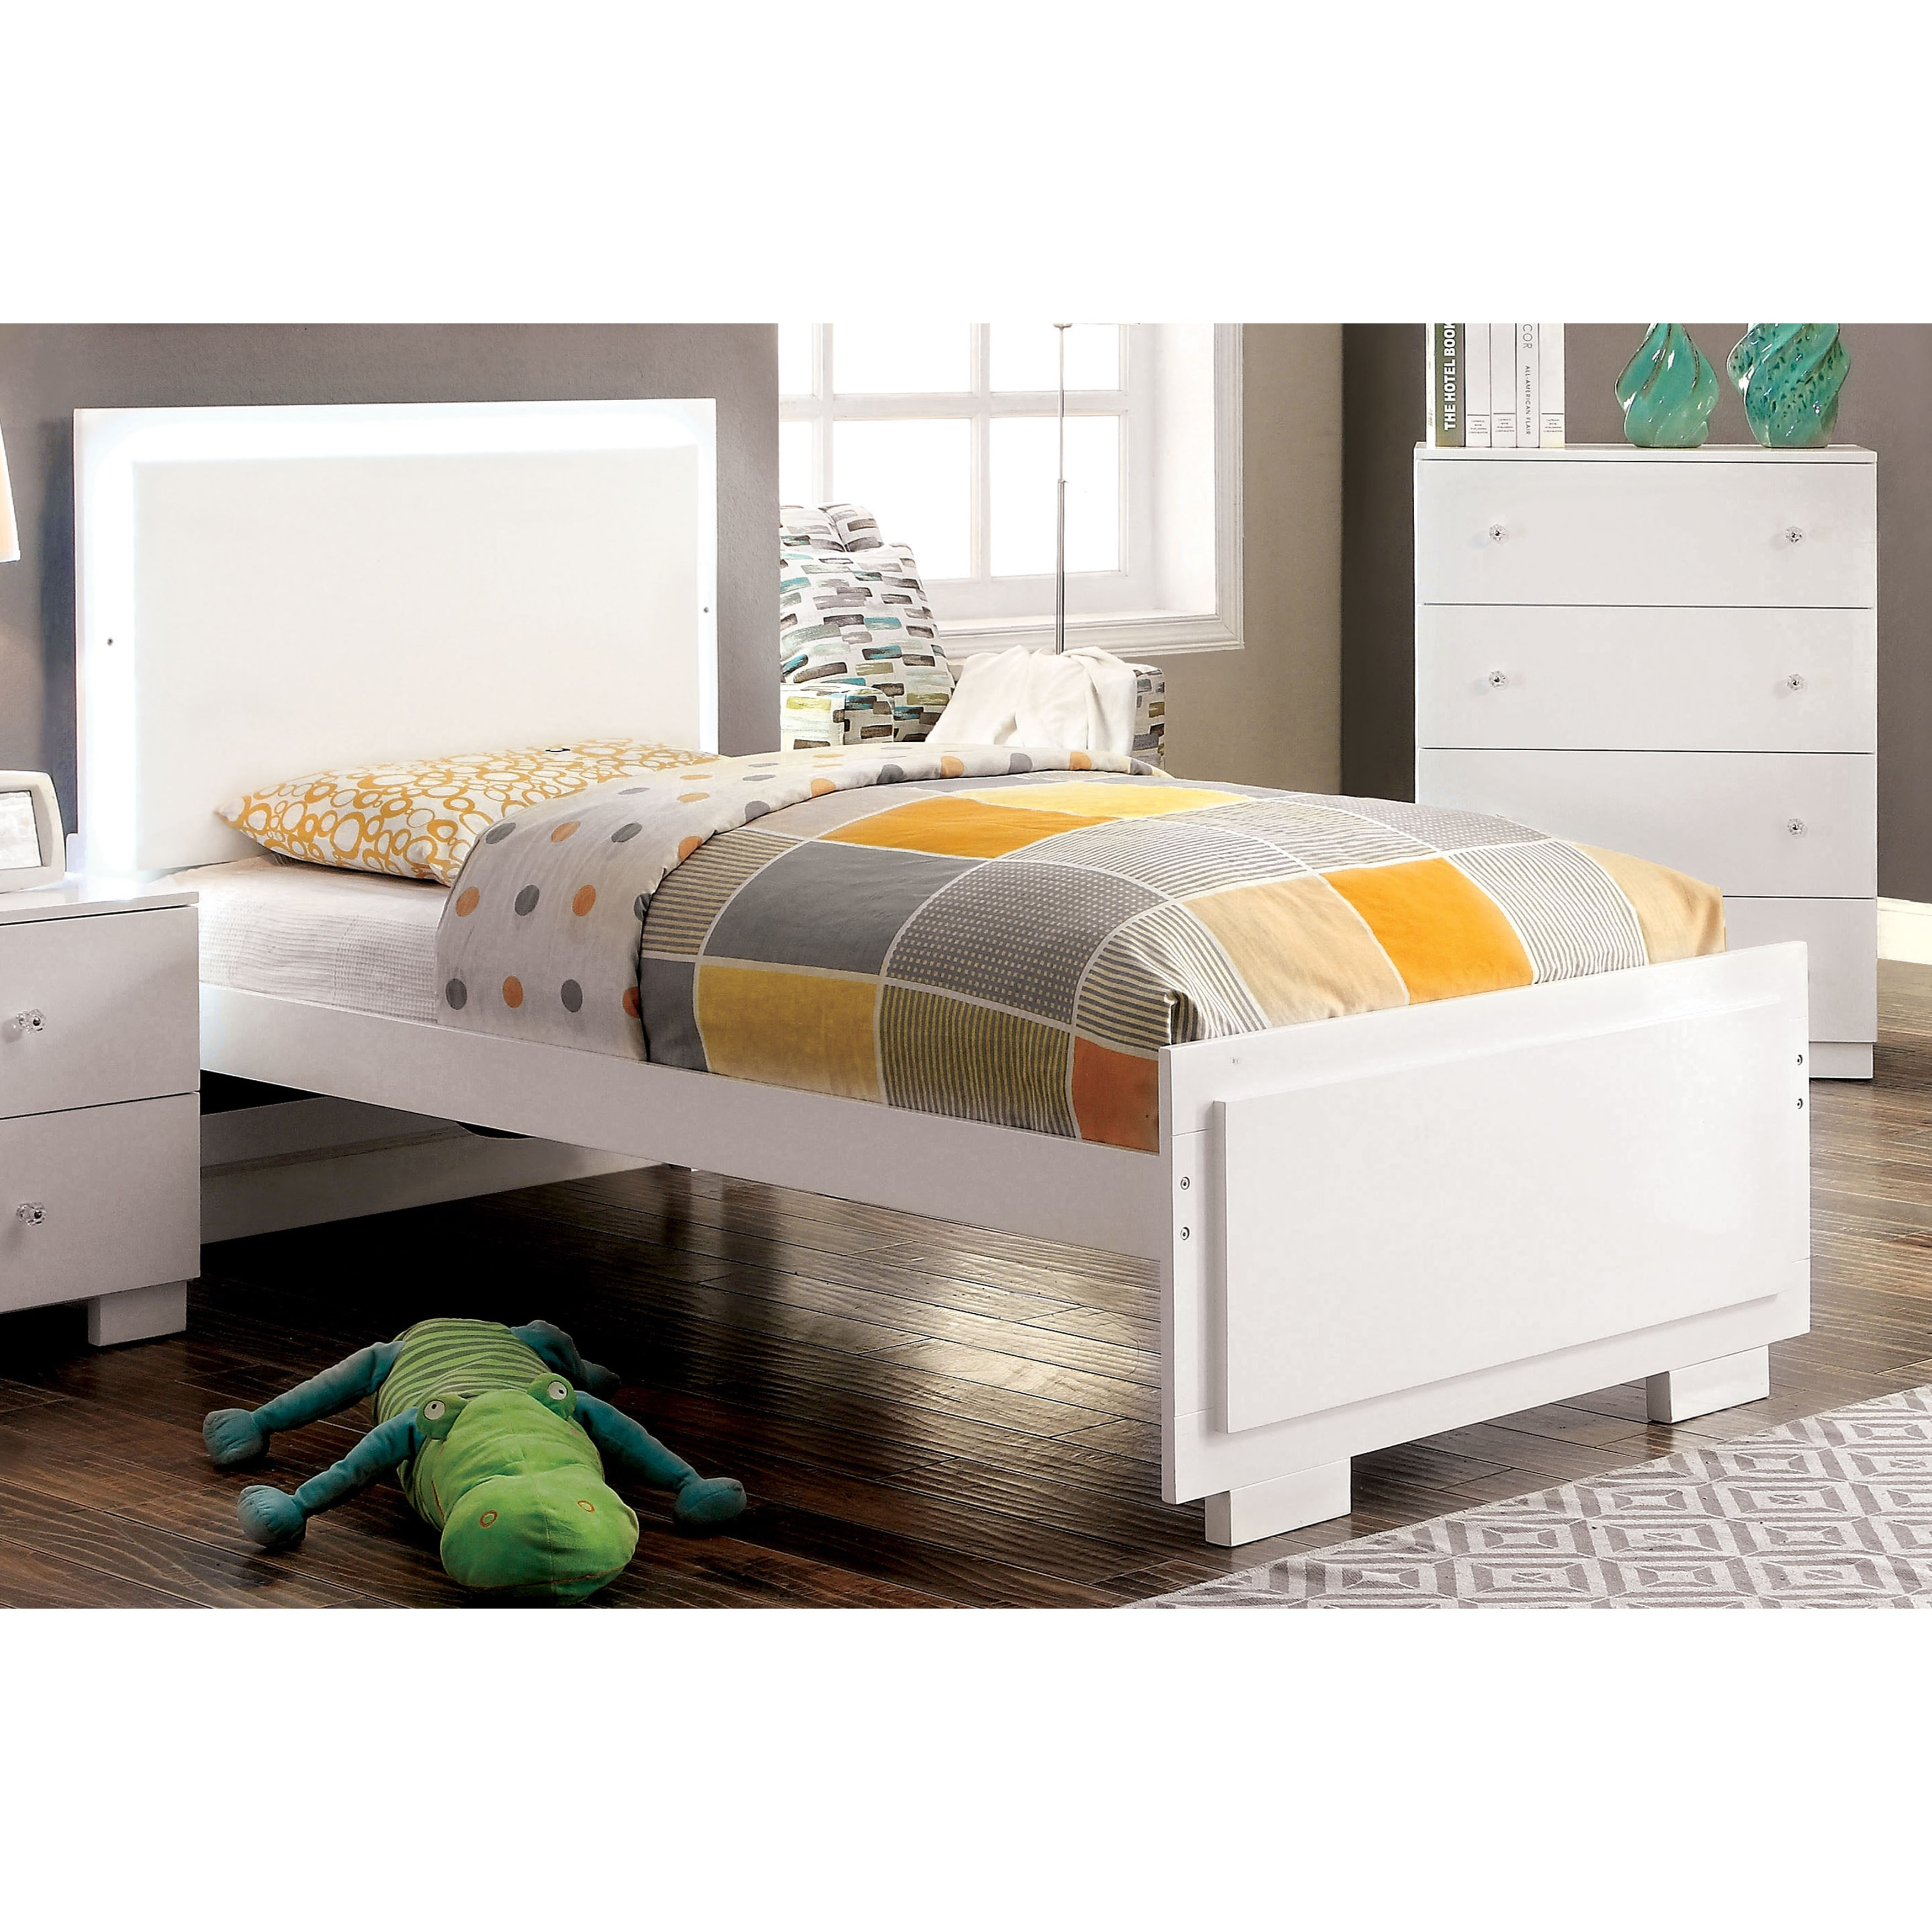 Furniture of America  Isobelle Modern White Platform Bed with LED Trim